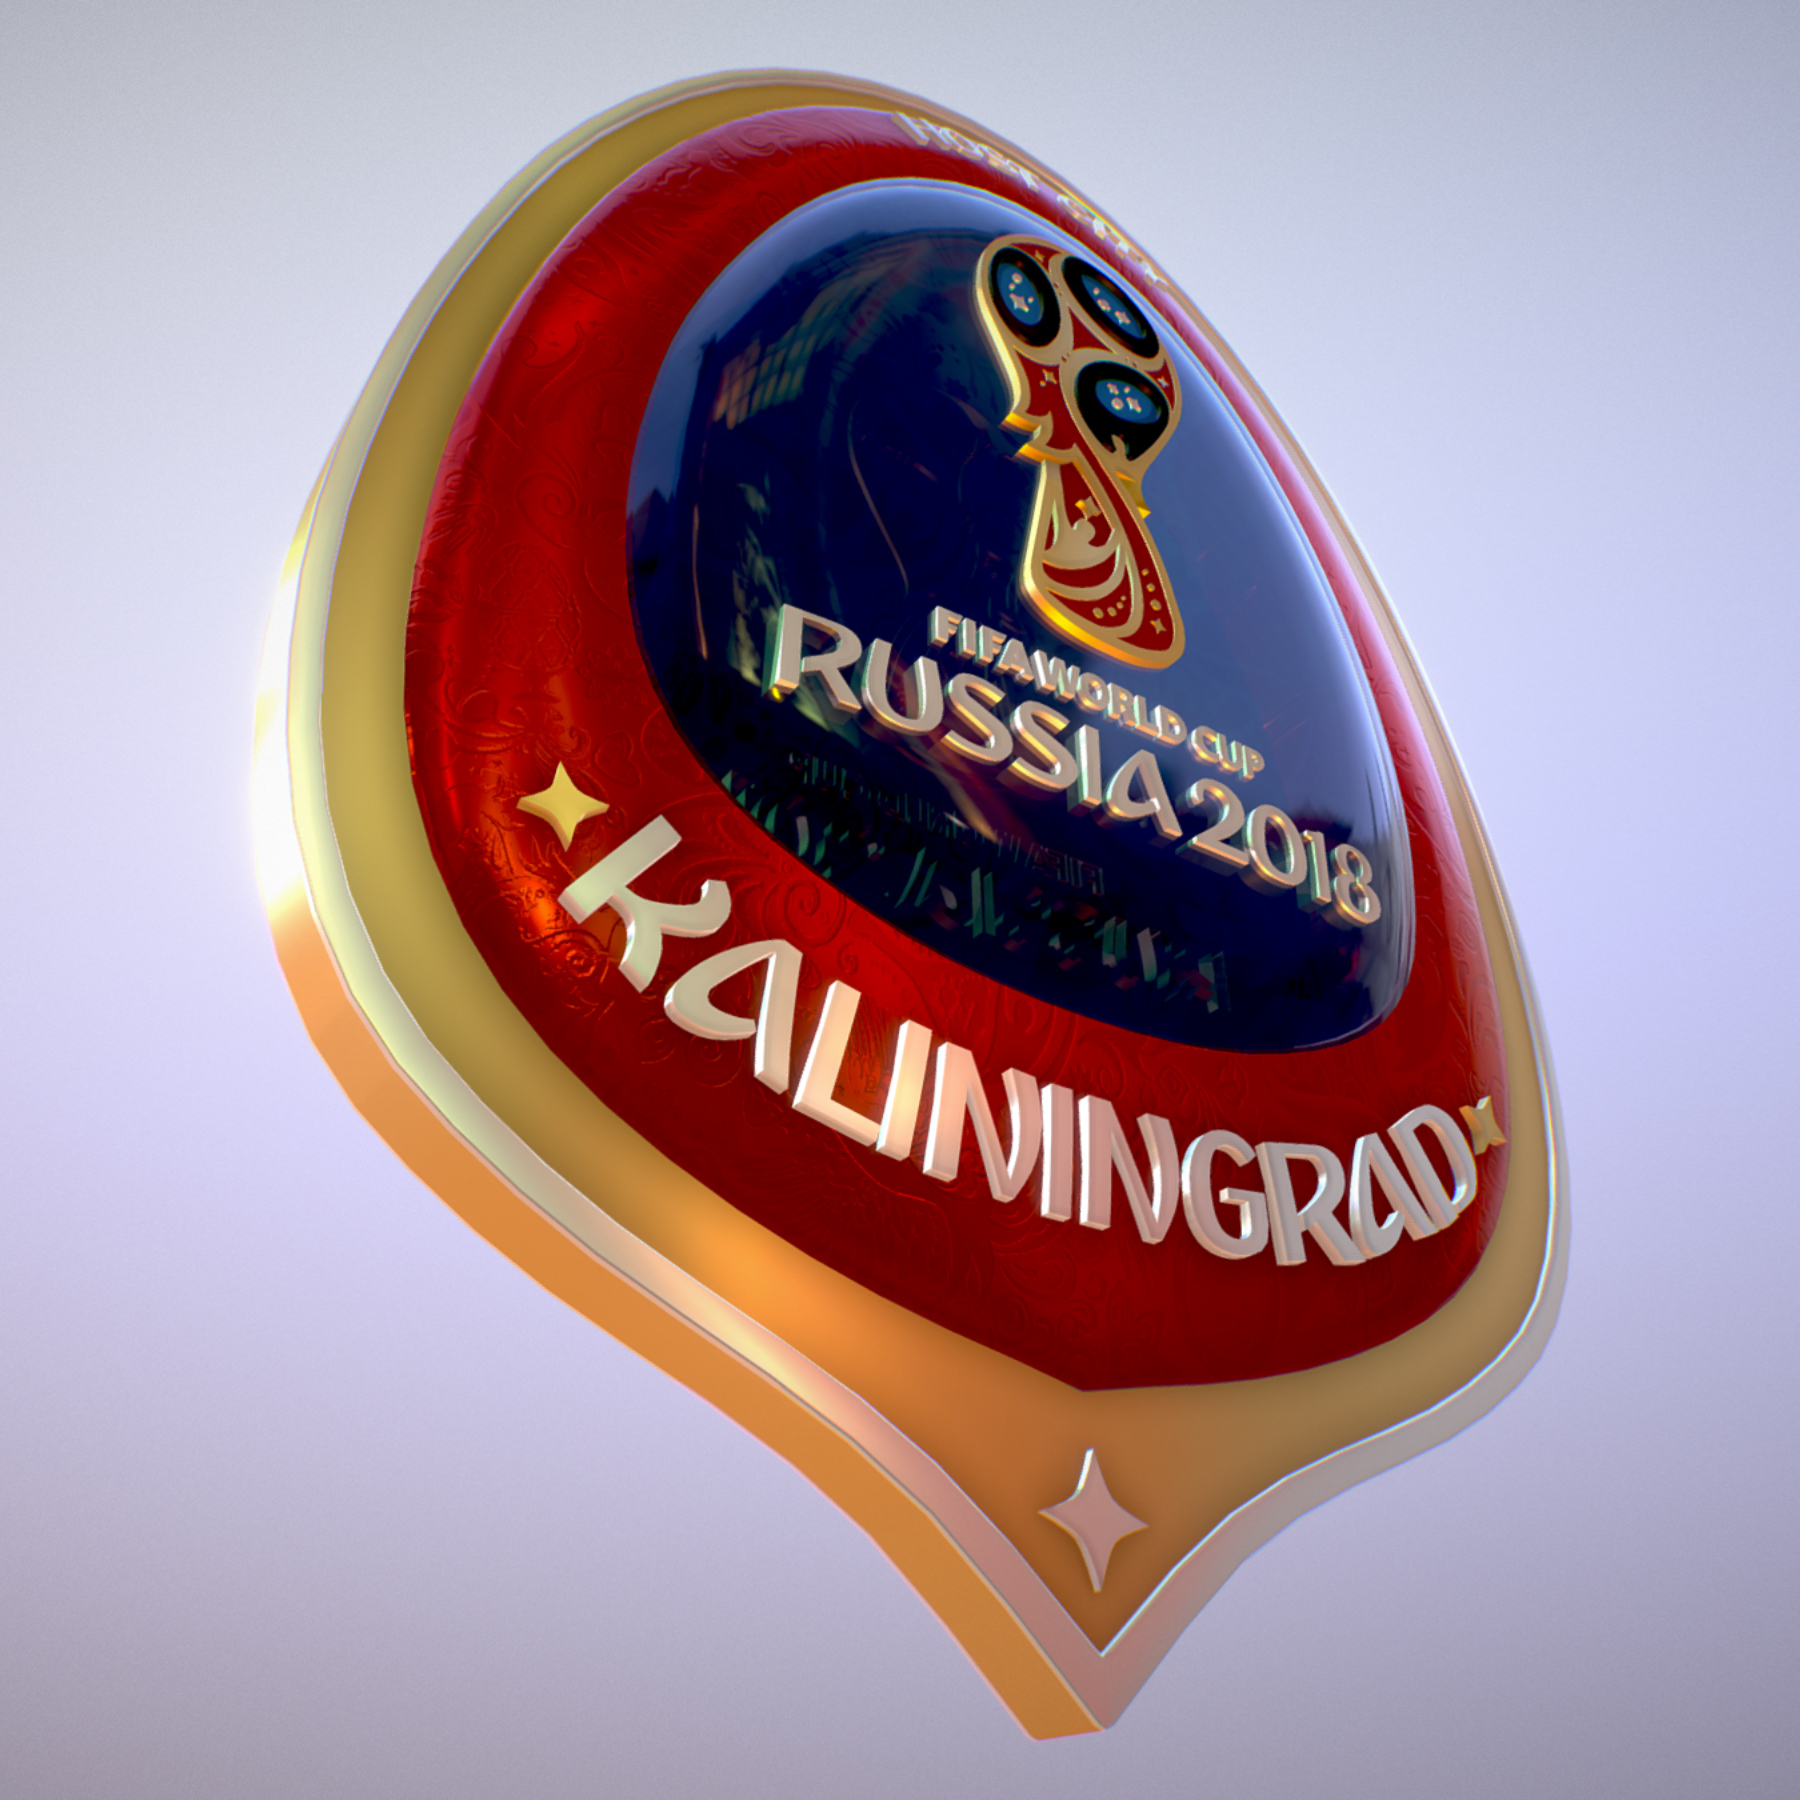 kaliningrad city world cup russia 2018 symbol 3d model max  fbx jpeg jpg ma mb obj 271761